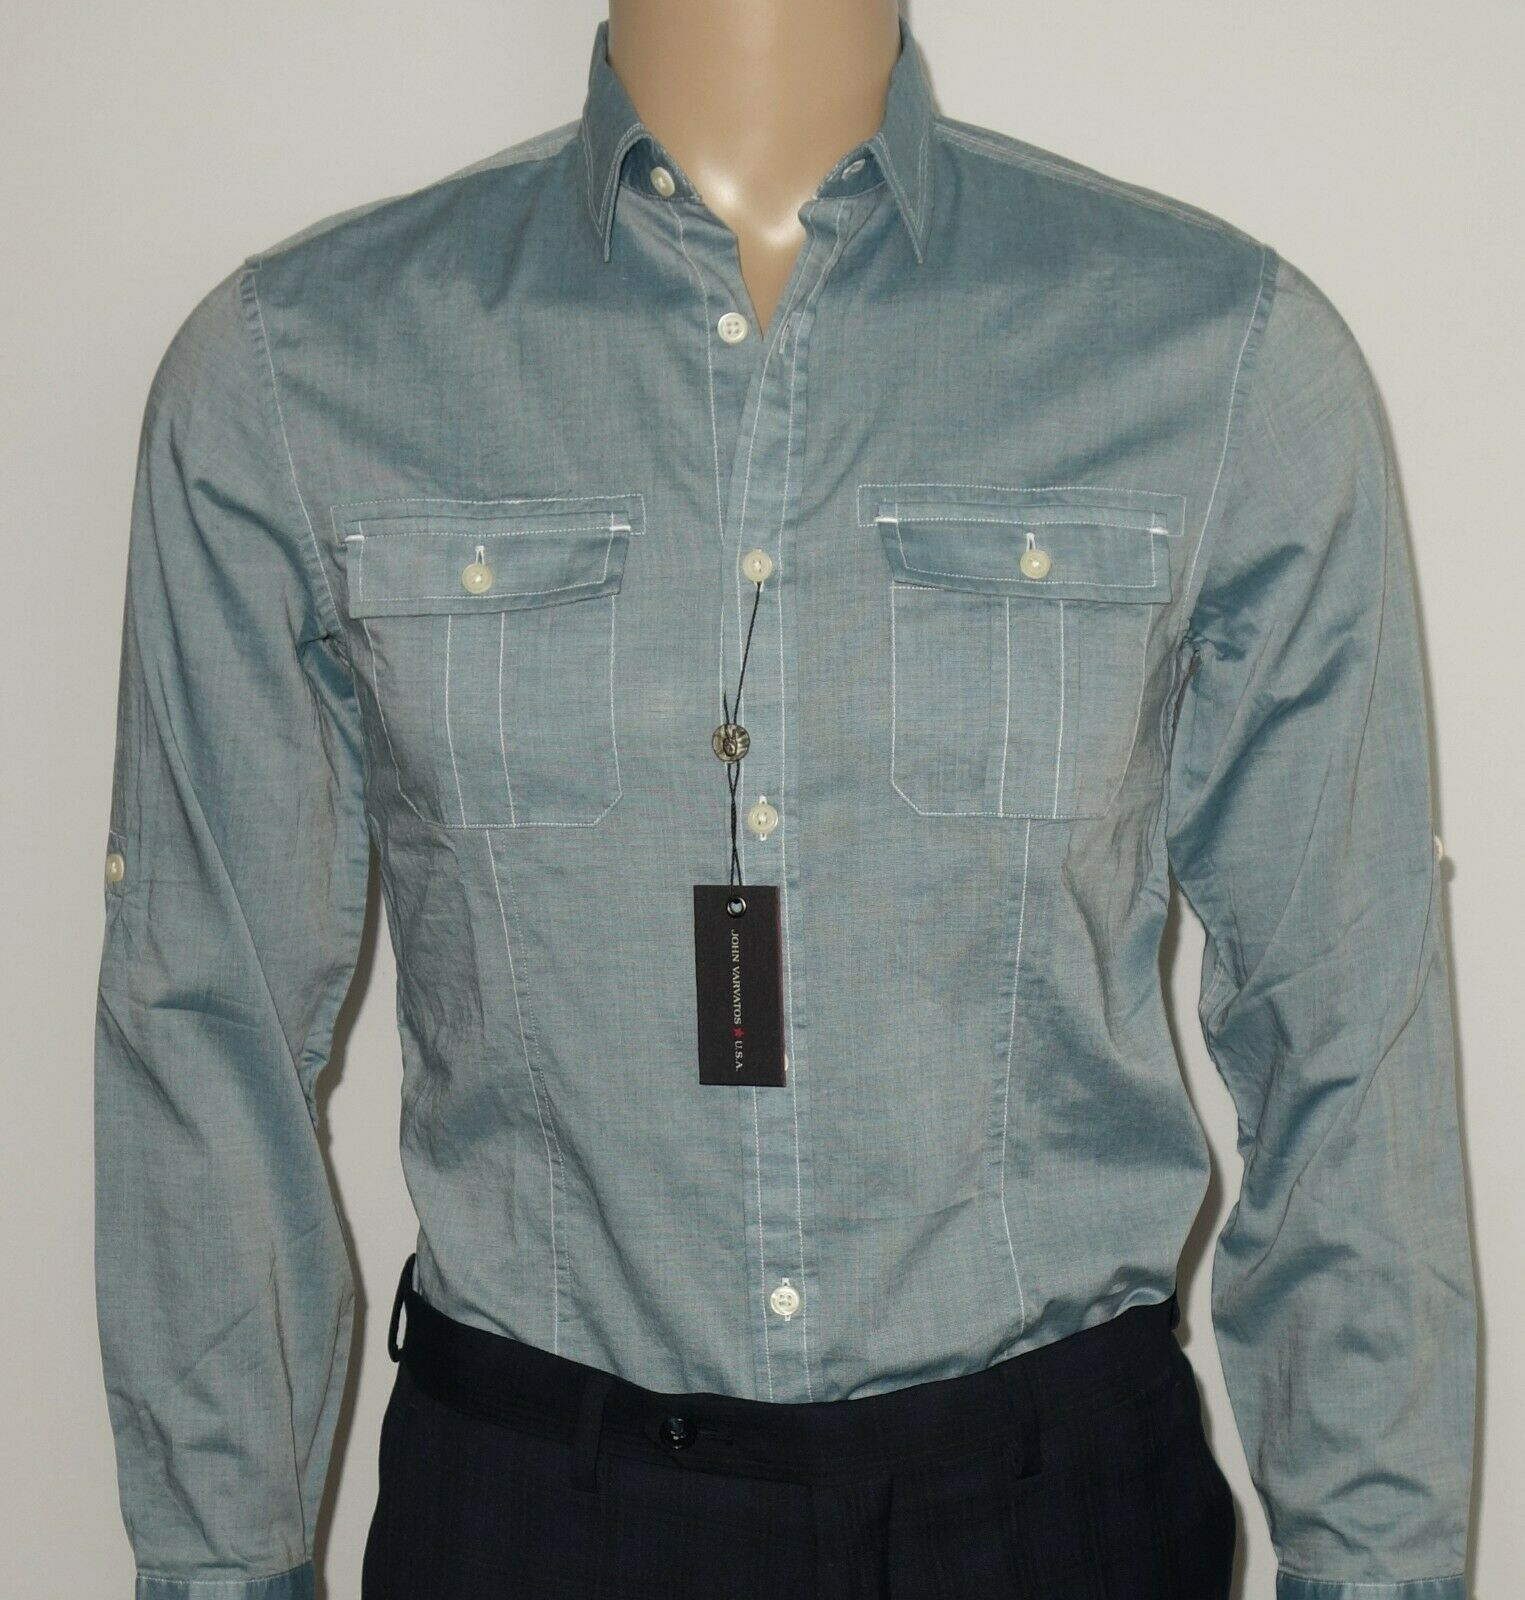 NEW John Varvatos Roll Tab Shirt in Light bluee Size X-SMALL 31 32